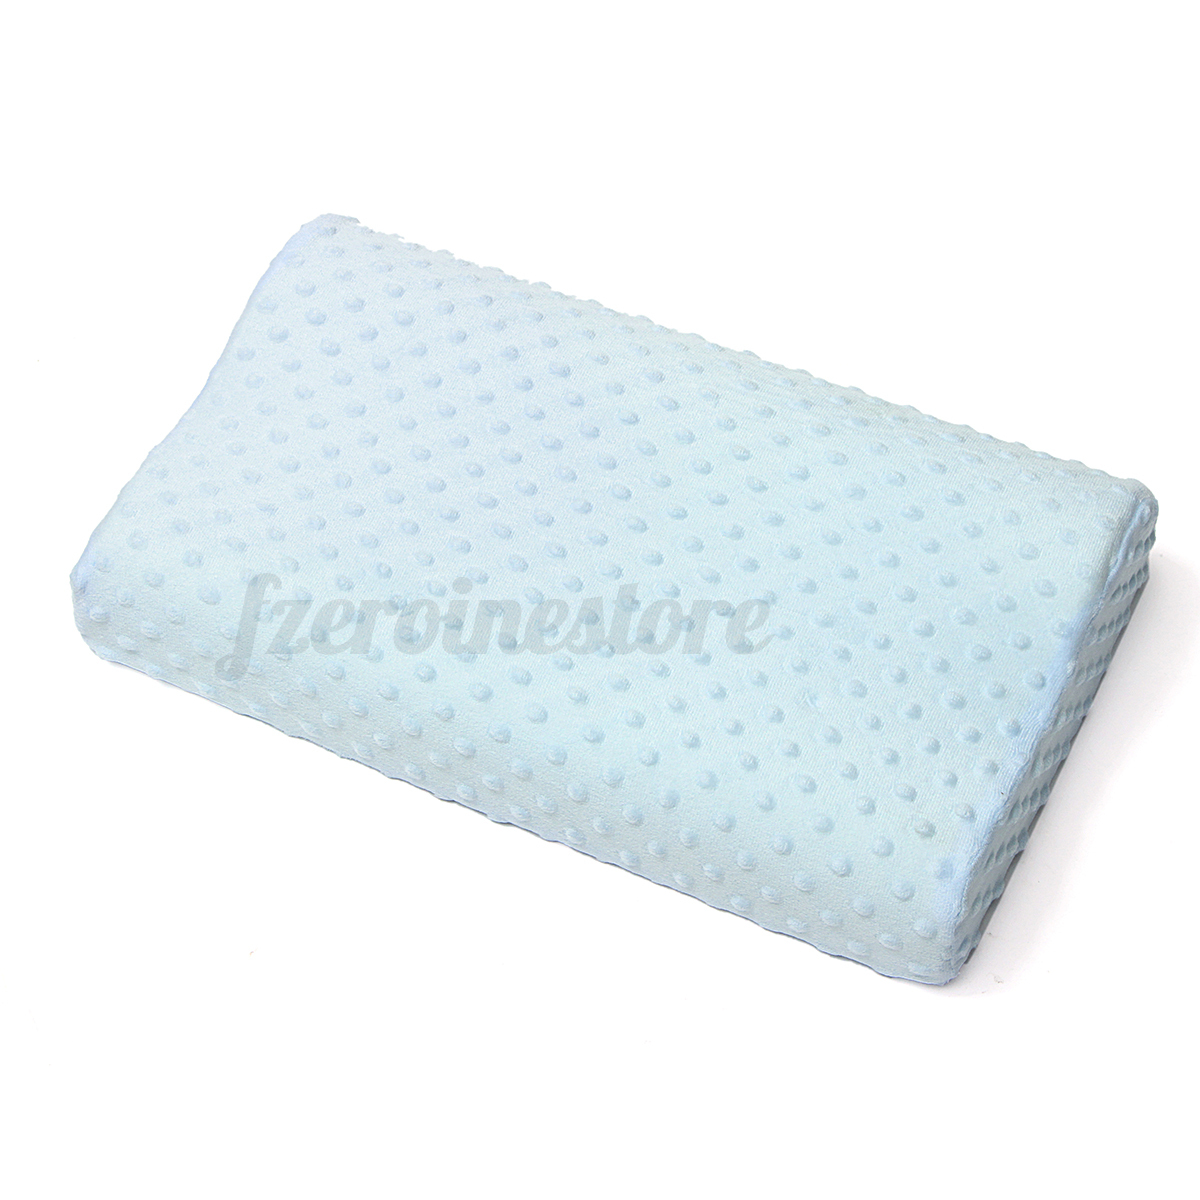 contour memory foam pillow orthopaedic firm head neck back support pillows new ebay. Black Bedroom Furniture Sets. Home Design Ideas